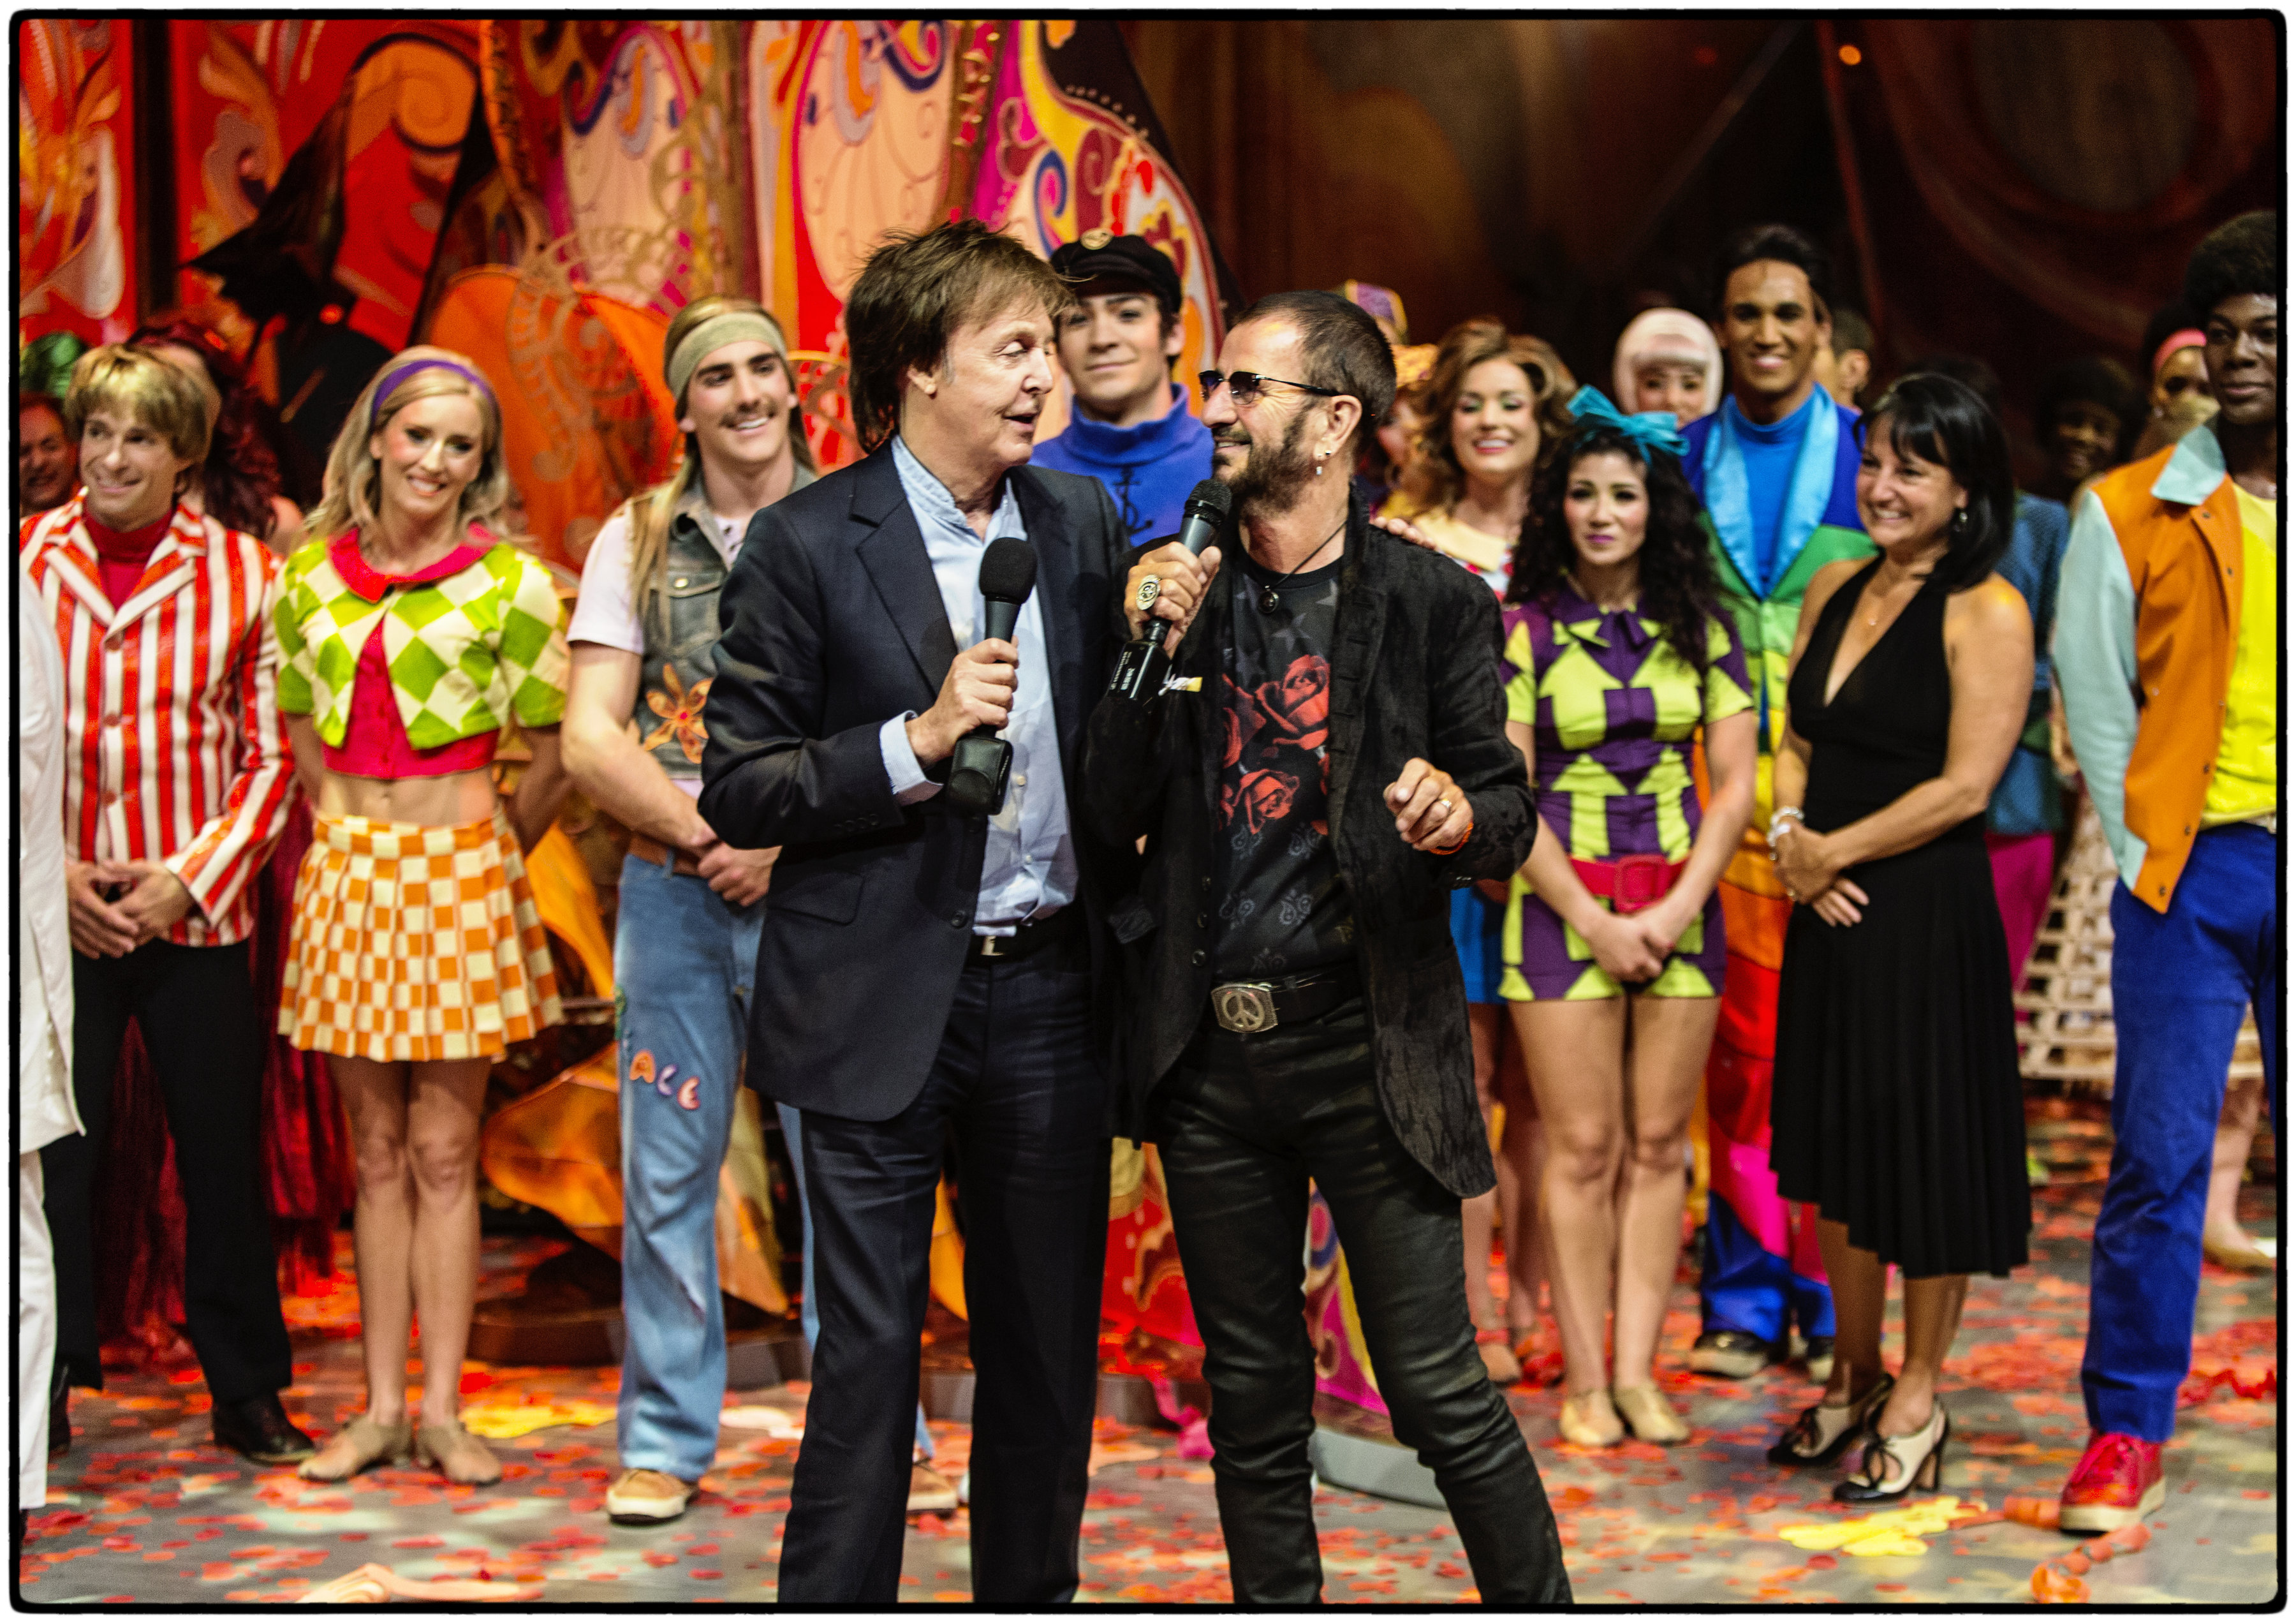 Beatles Love Show 10th Anniversary McCartney And Starr